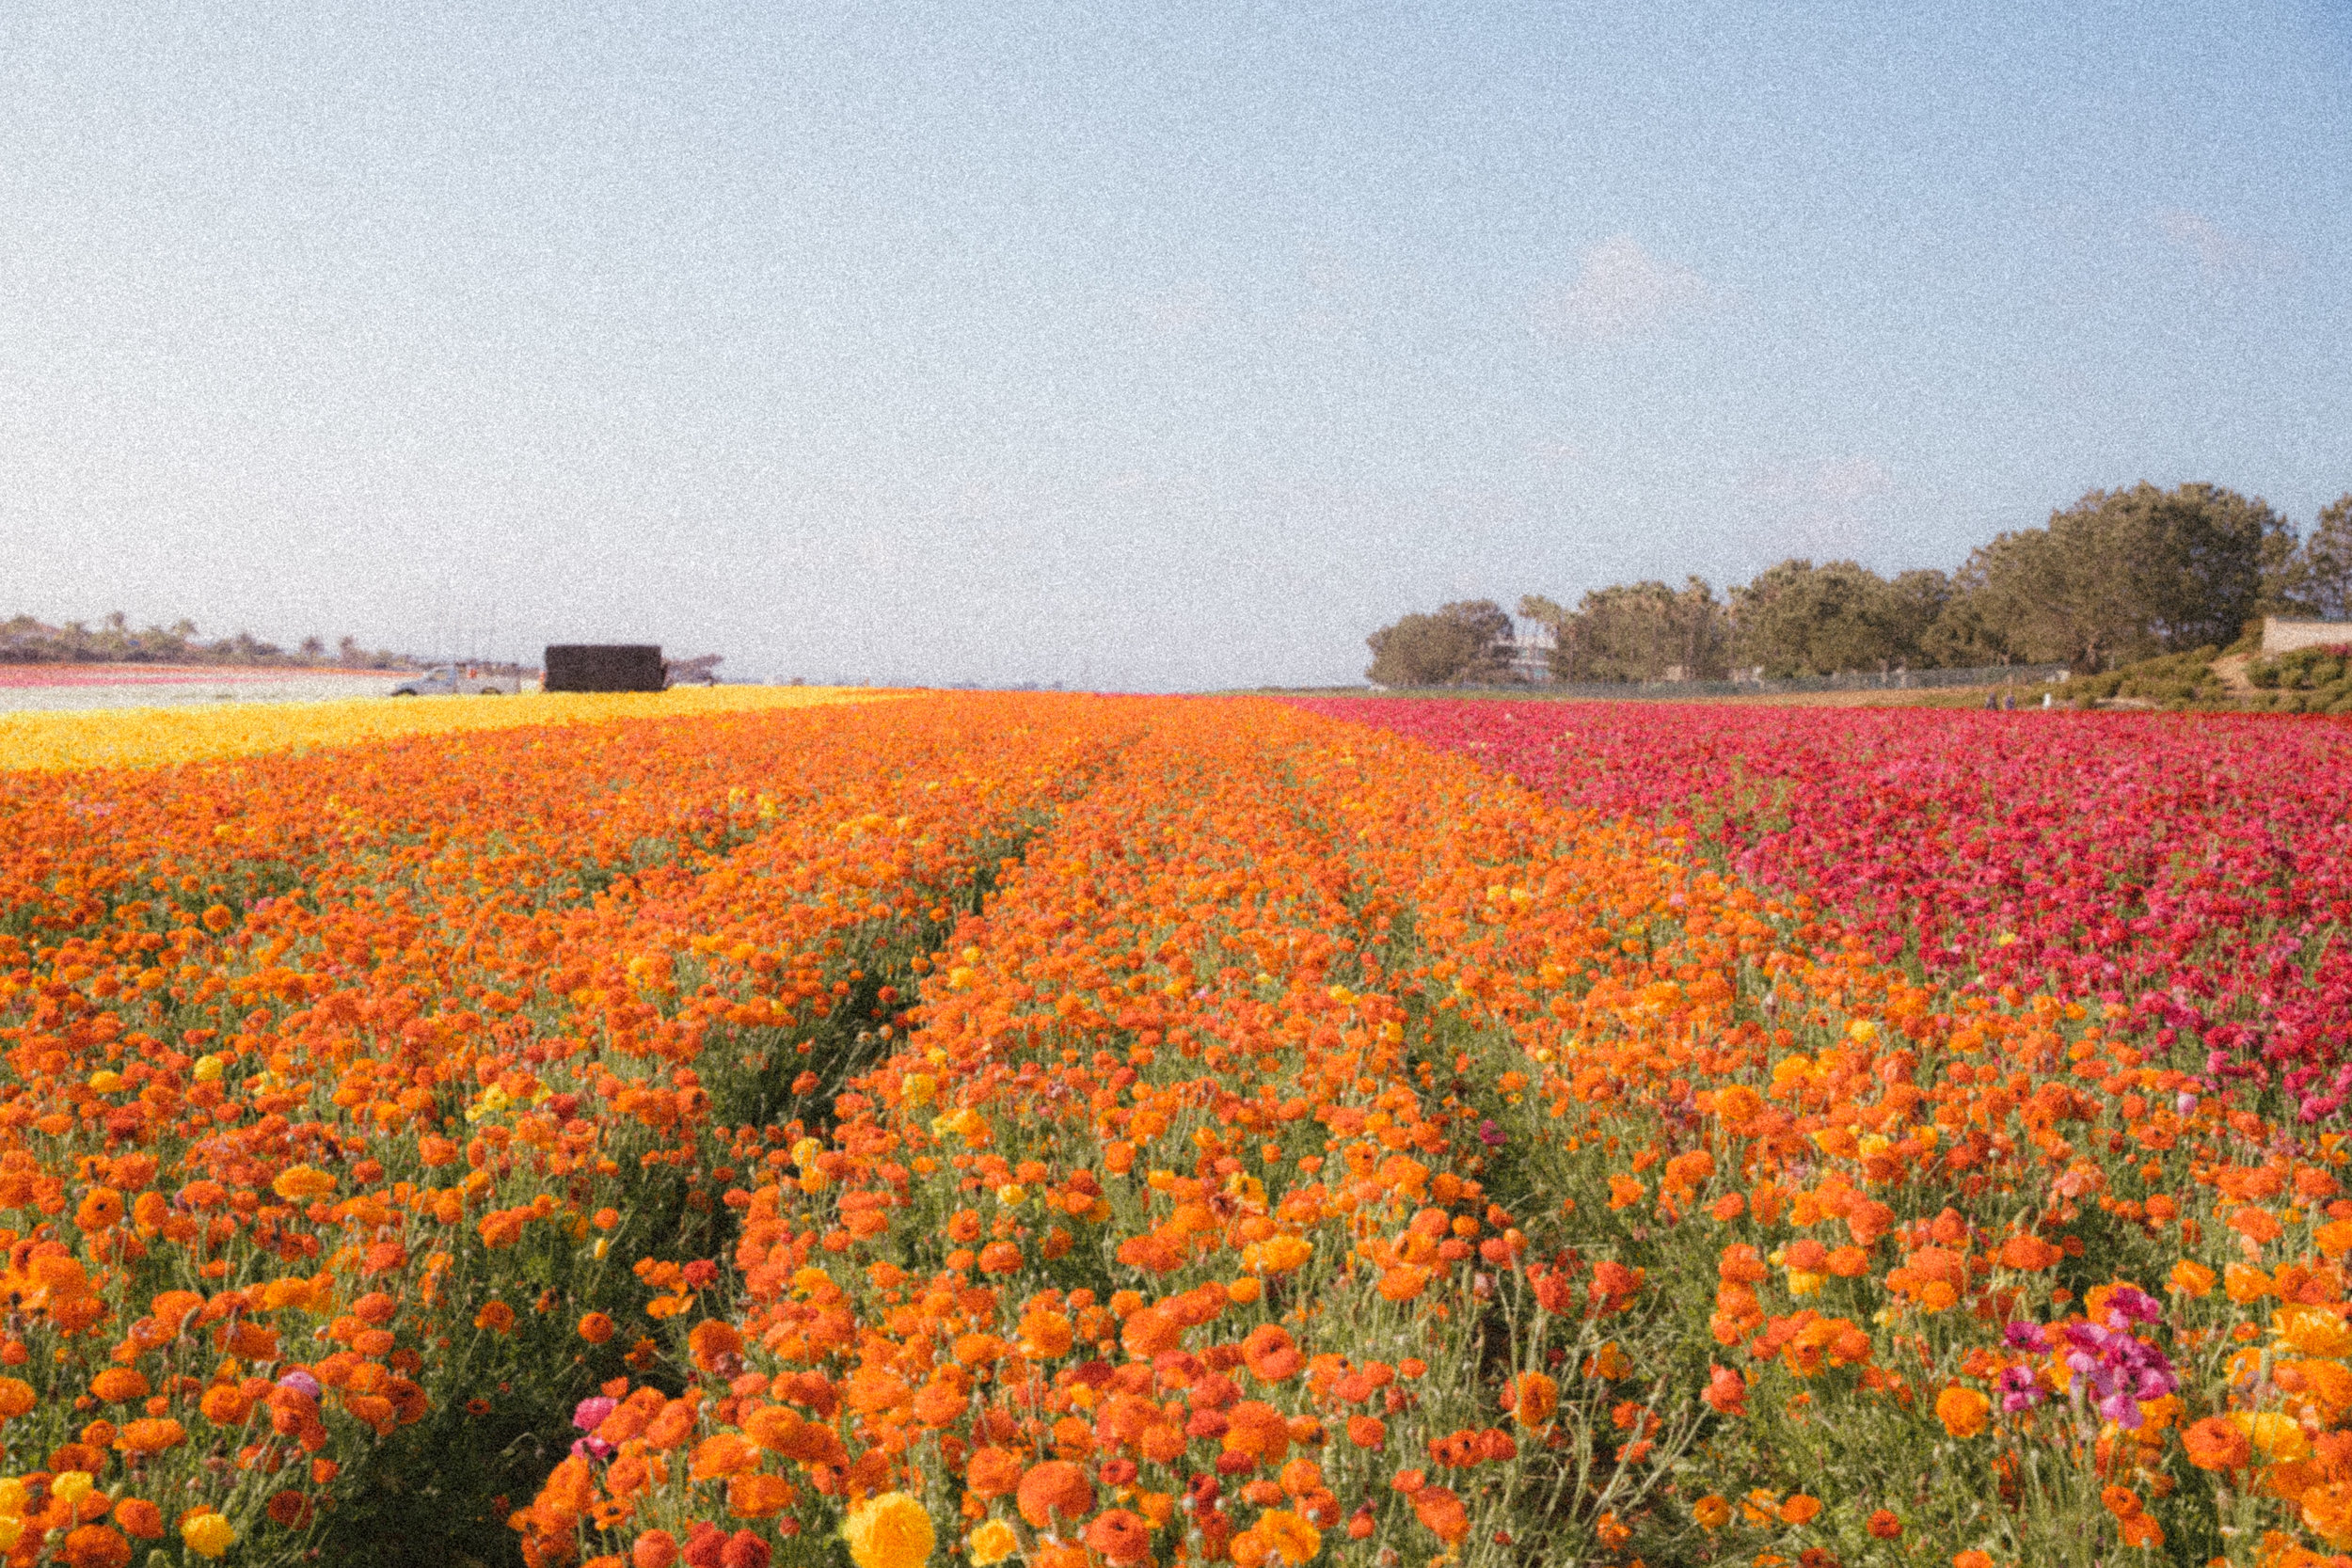 FLOWER_FIELDS-54.jpg